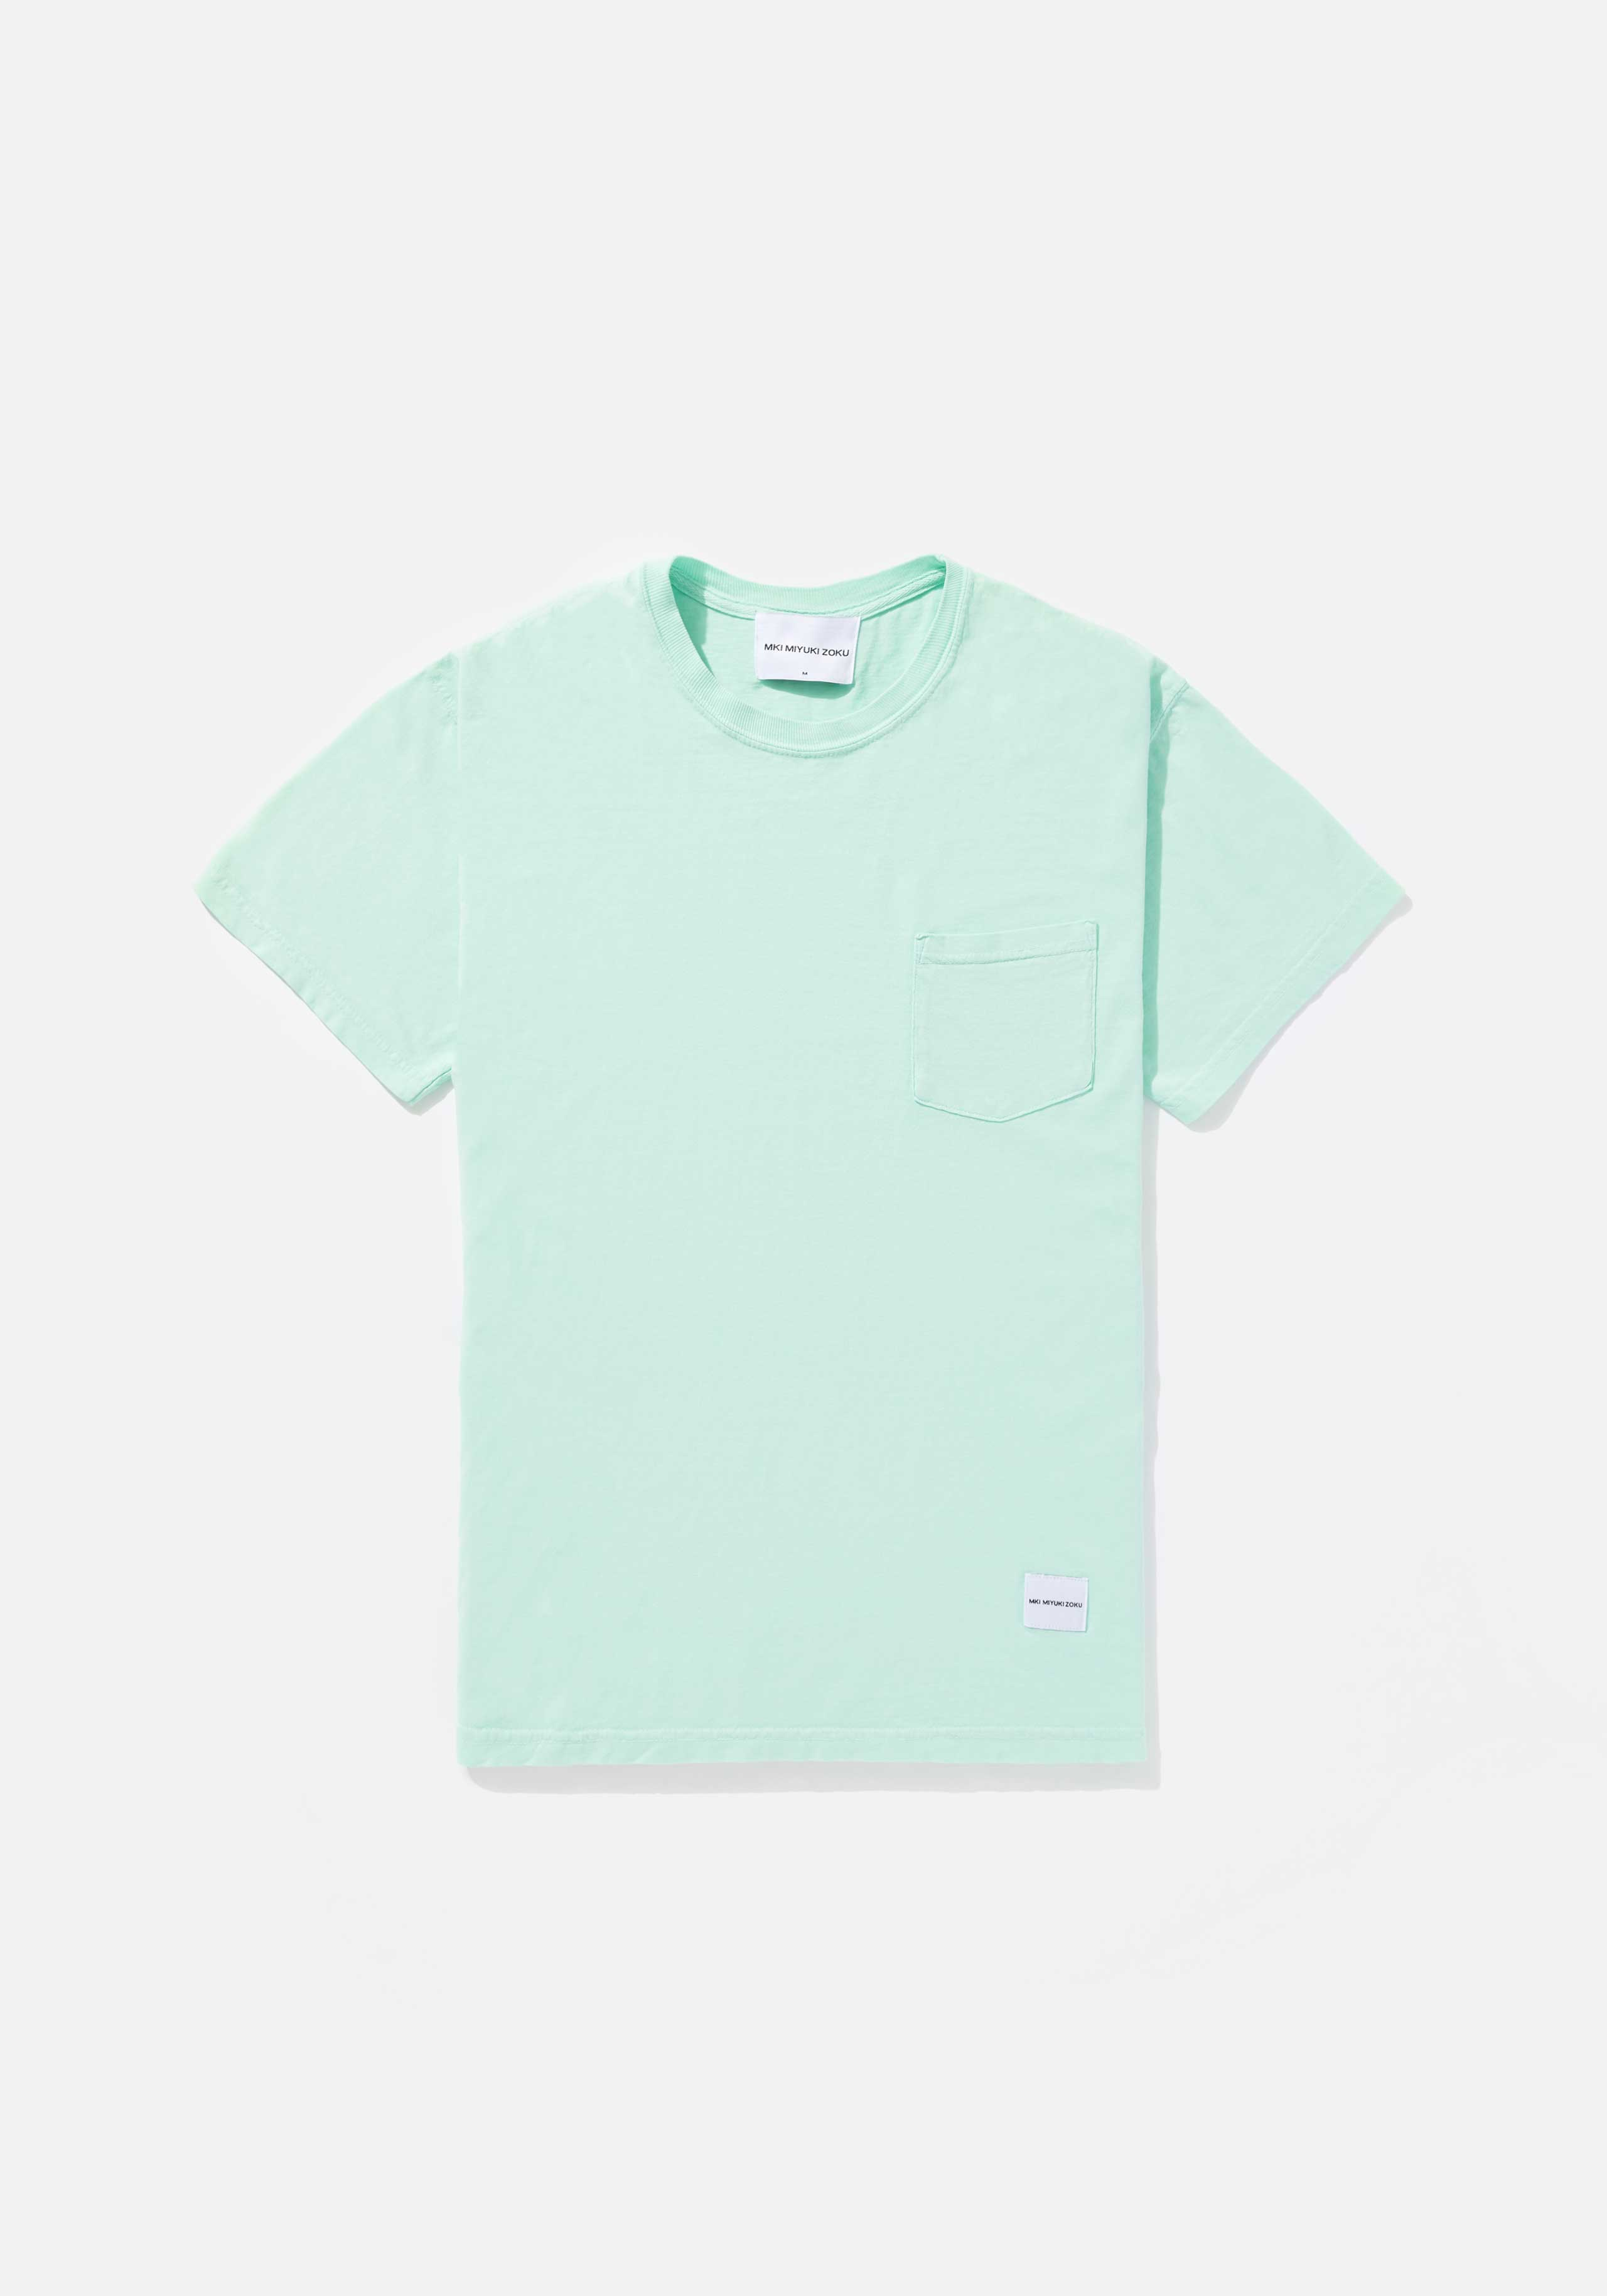 mki garment dyed pocket tee 1